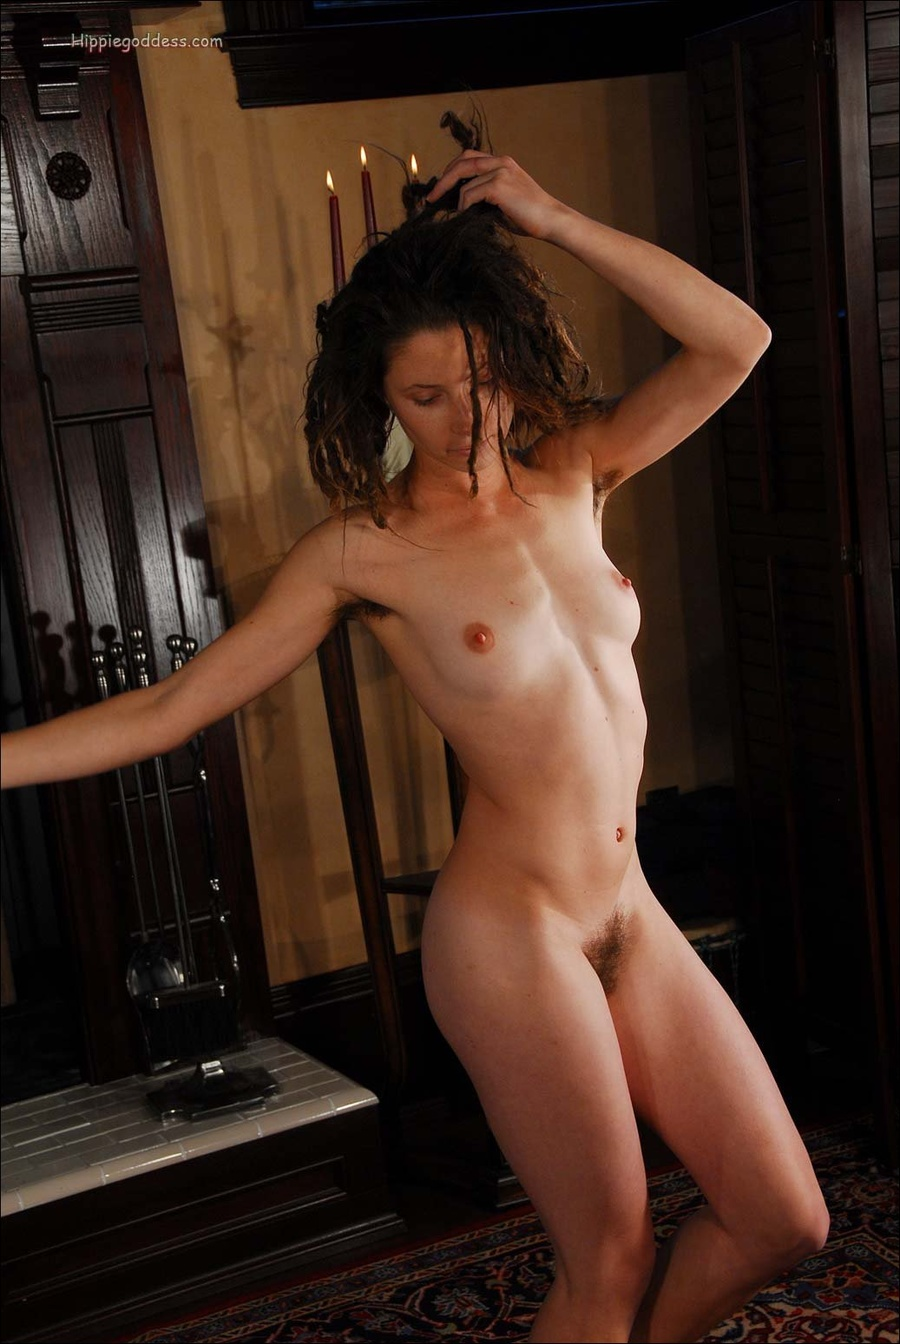 Voyeur Wife Exotic Hairy Hippie Girl Dance - Xxx Dessert -7088